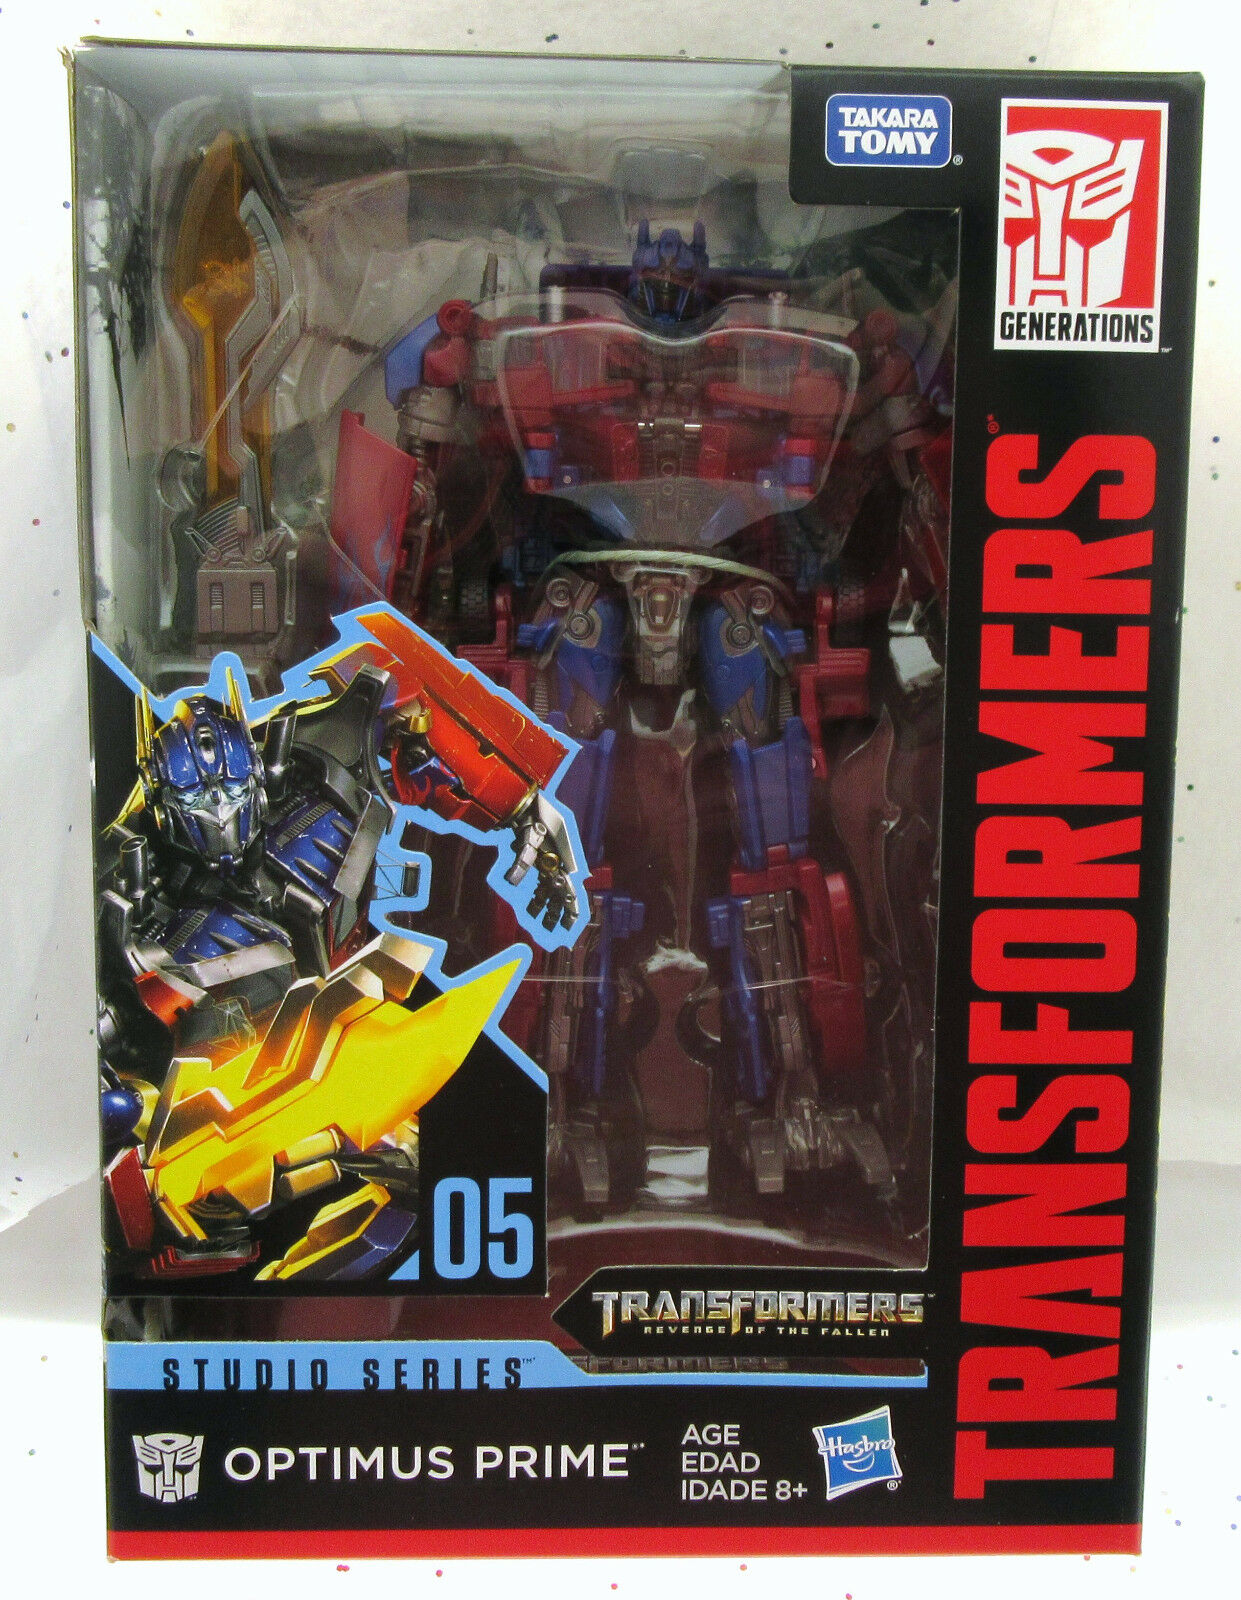 Optimus Prime 05, Studio Series, bilbot, Hasbro.